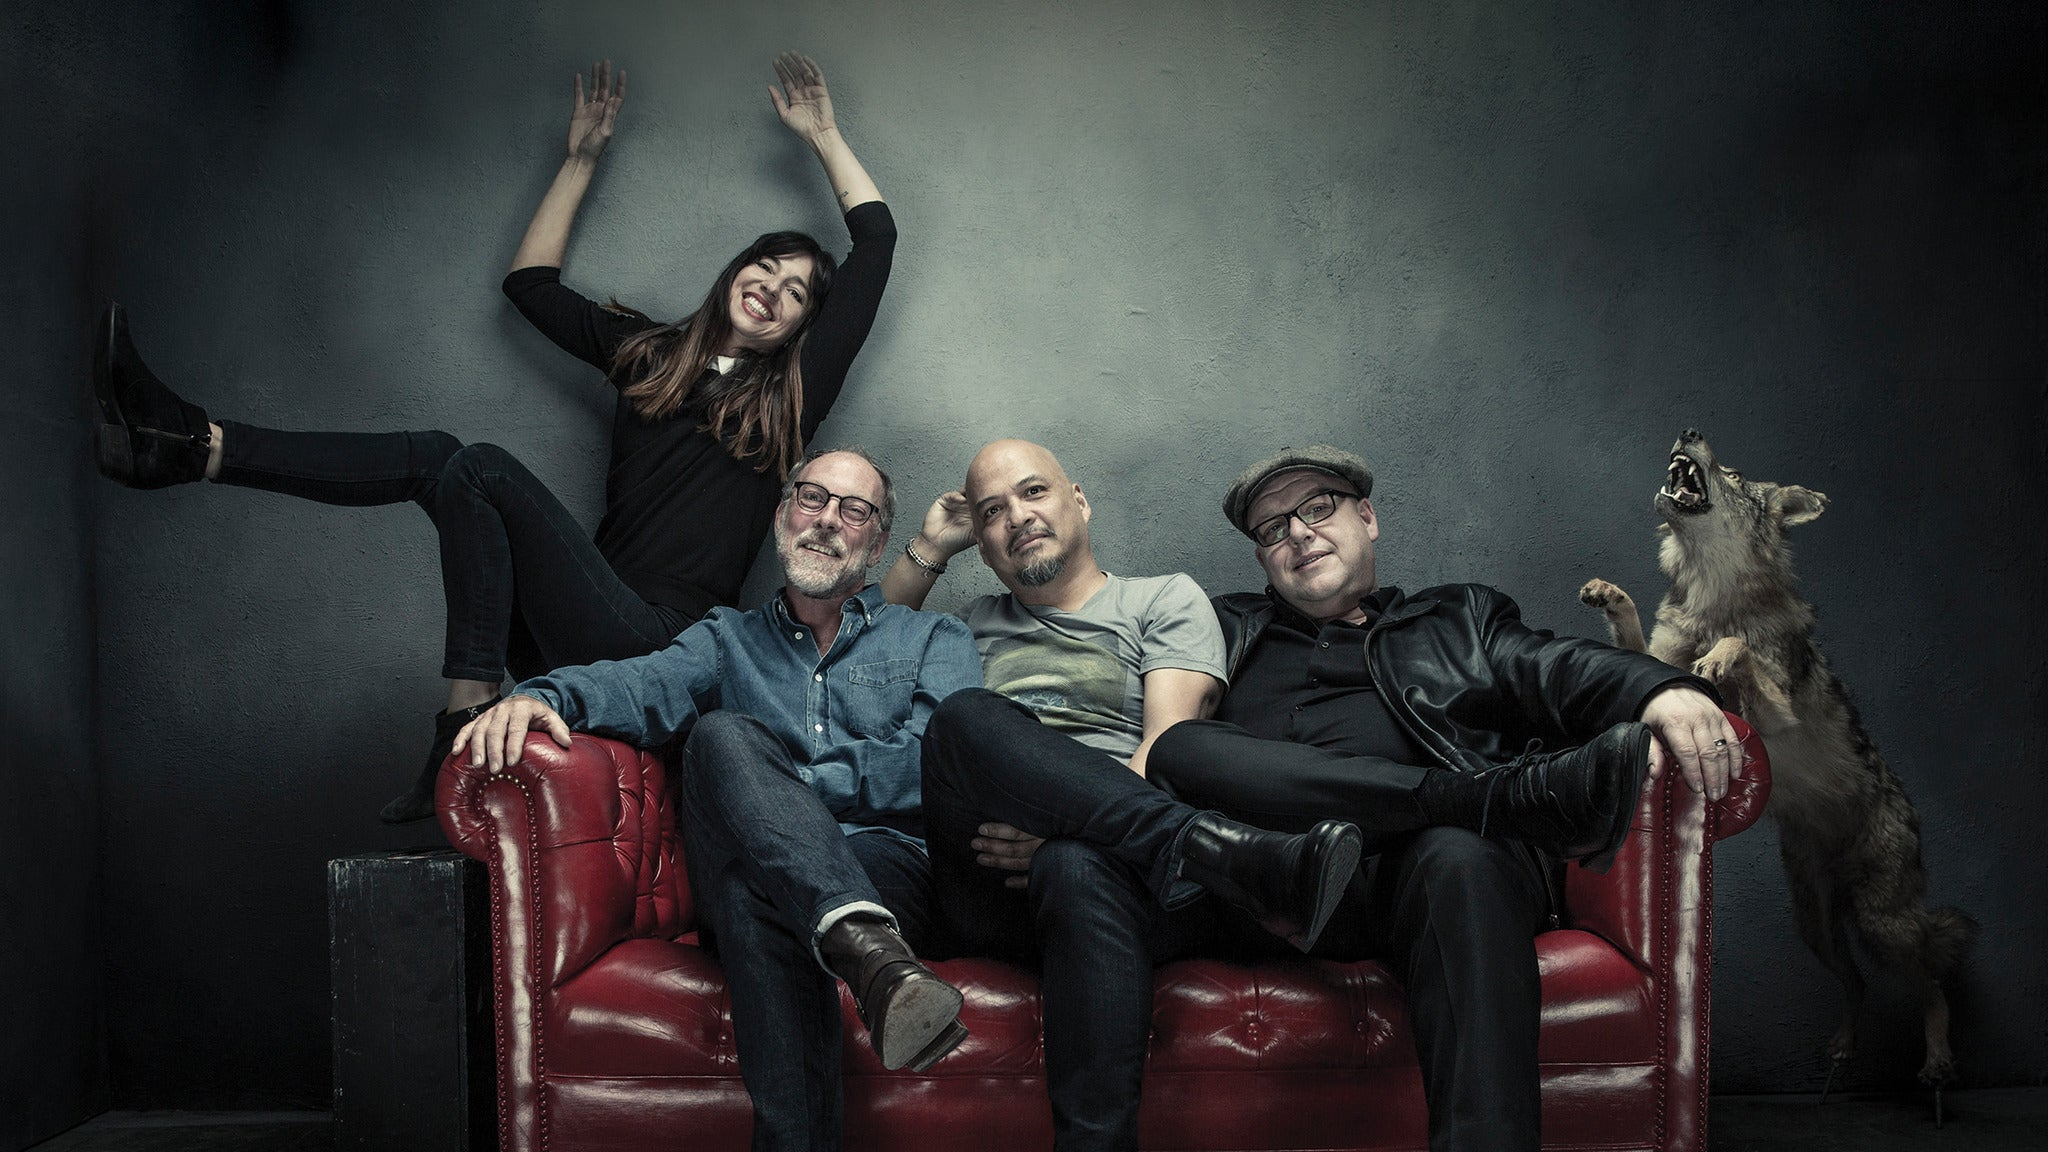 Pixies at Fox Theater - Oakland - Oakland, CA 94612